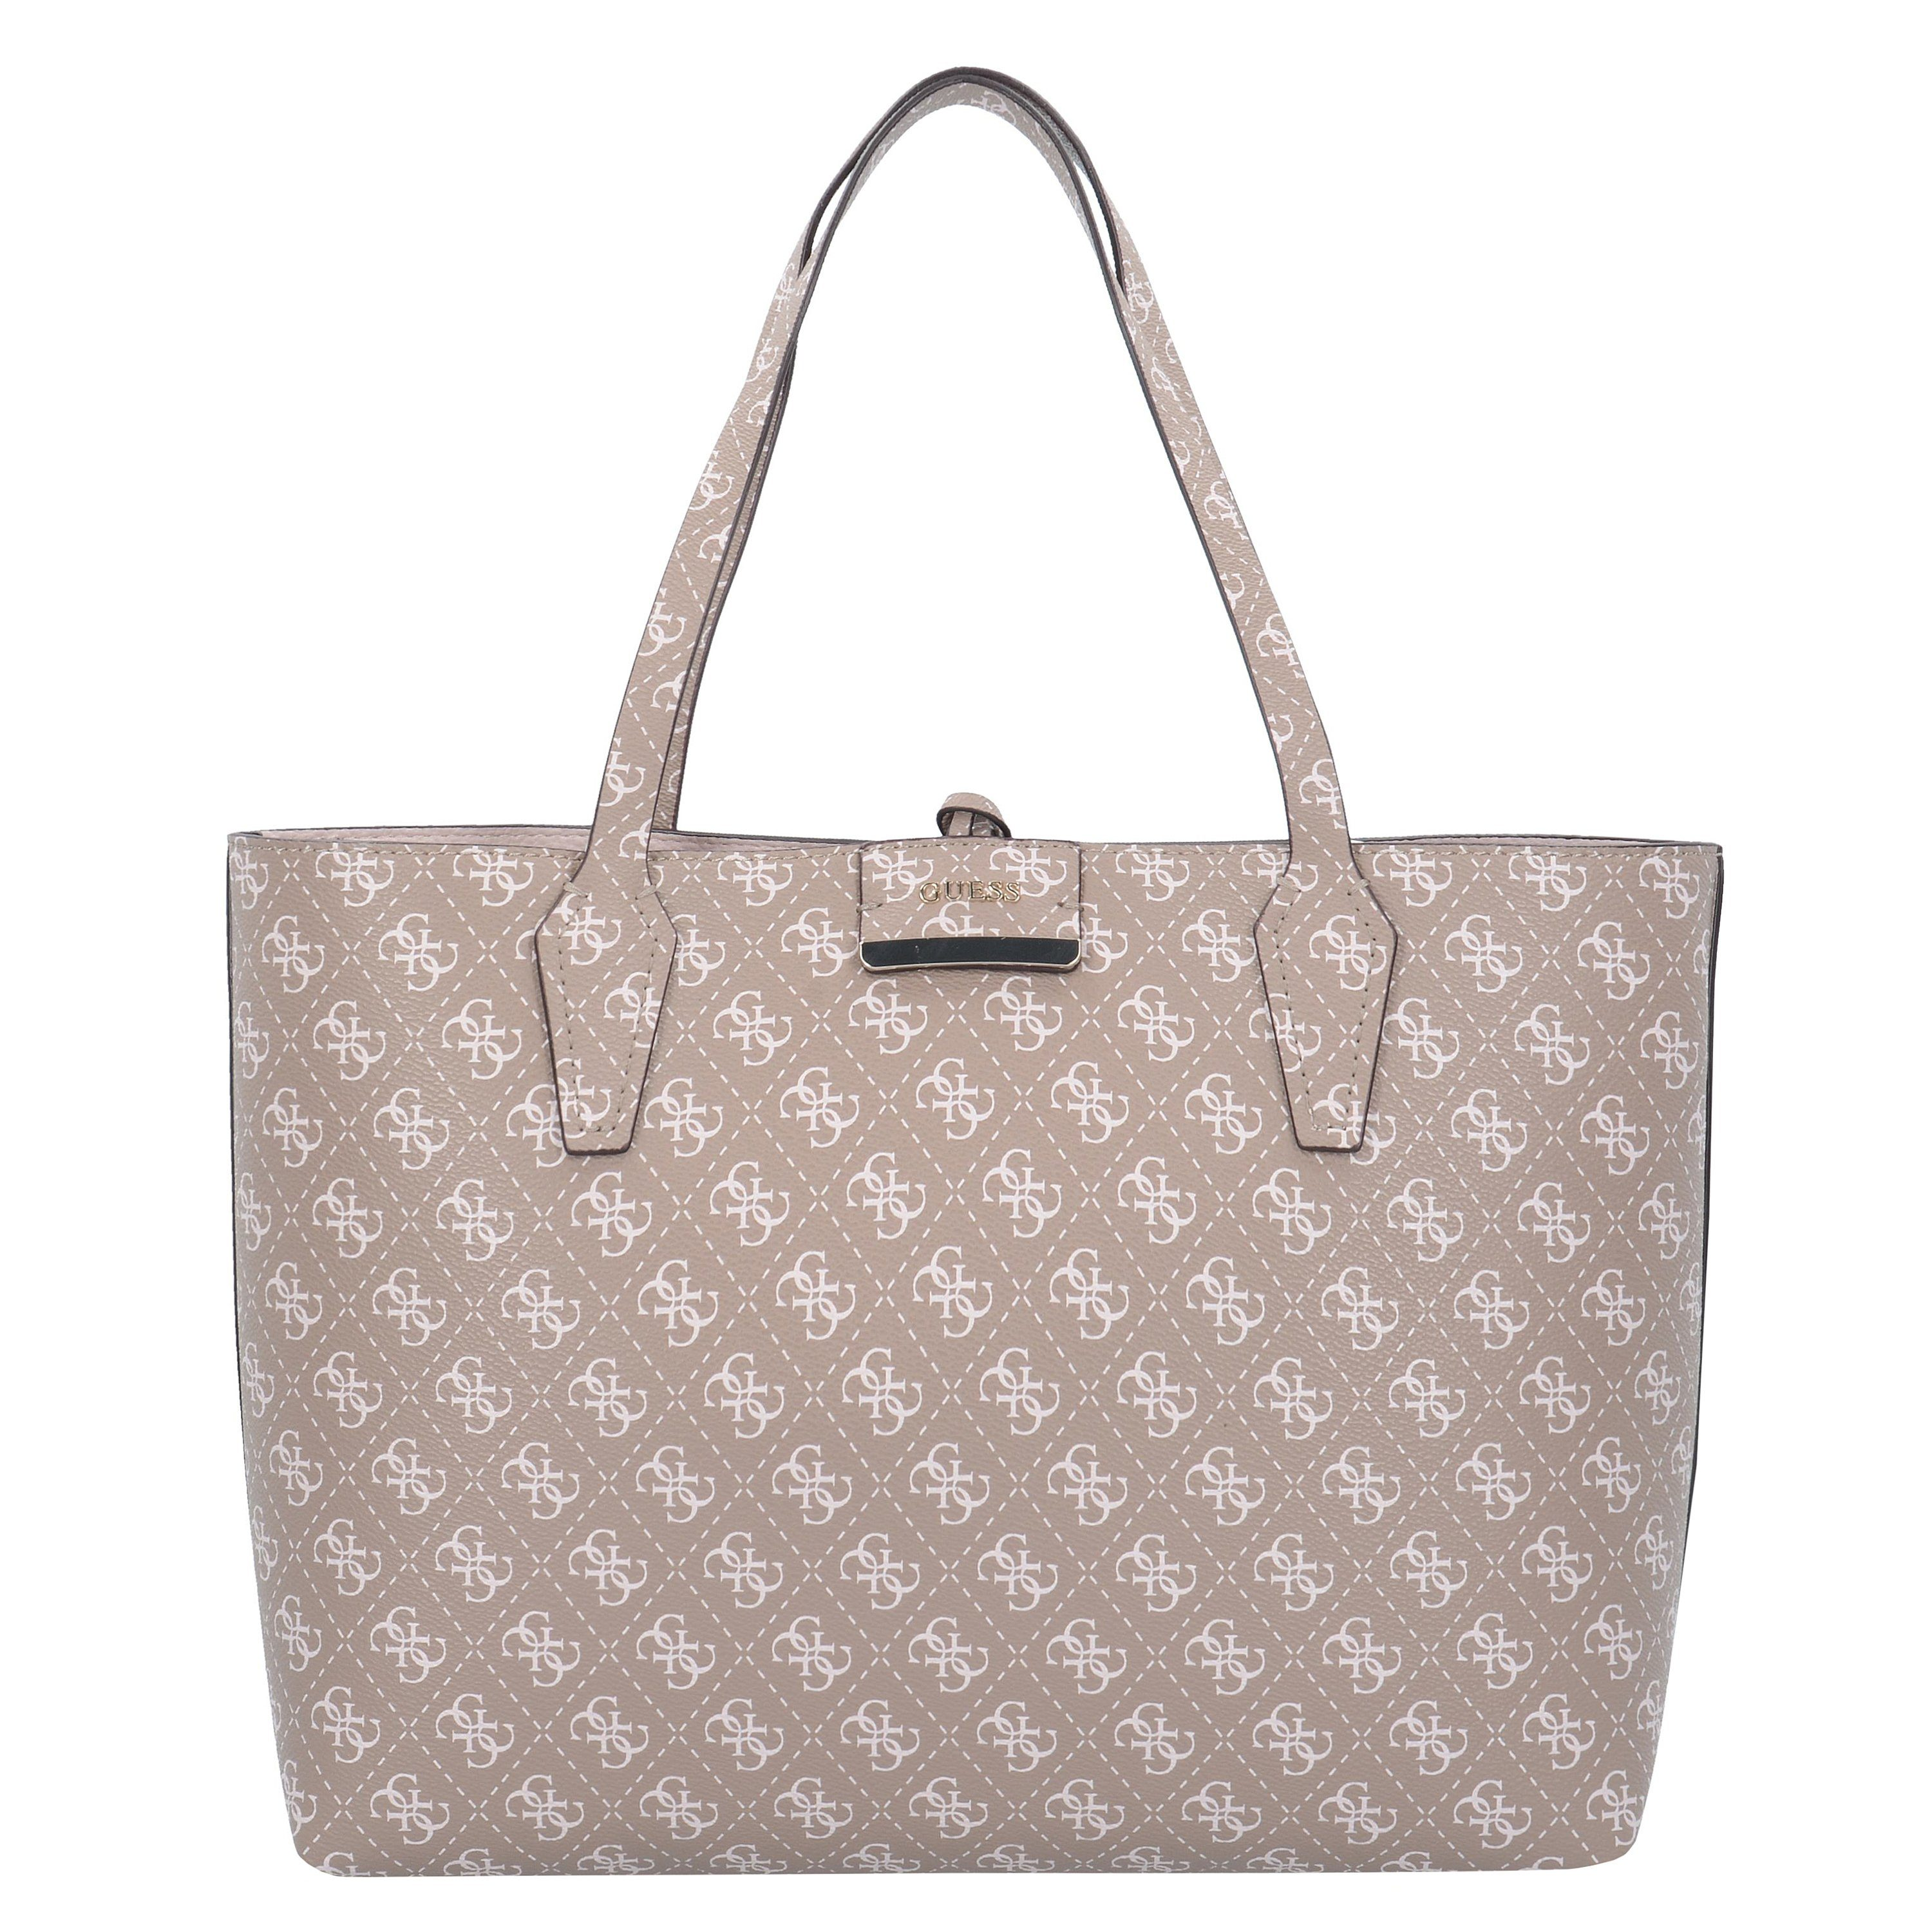 Guess Bobbi Inside Out Shopper Tasche 36 cm kaufen | OTTO